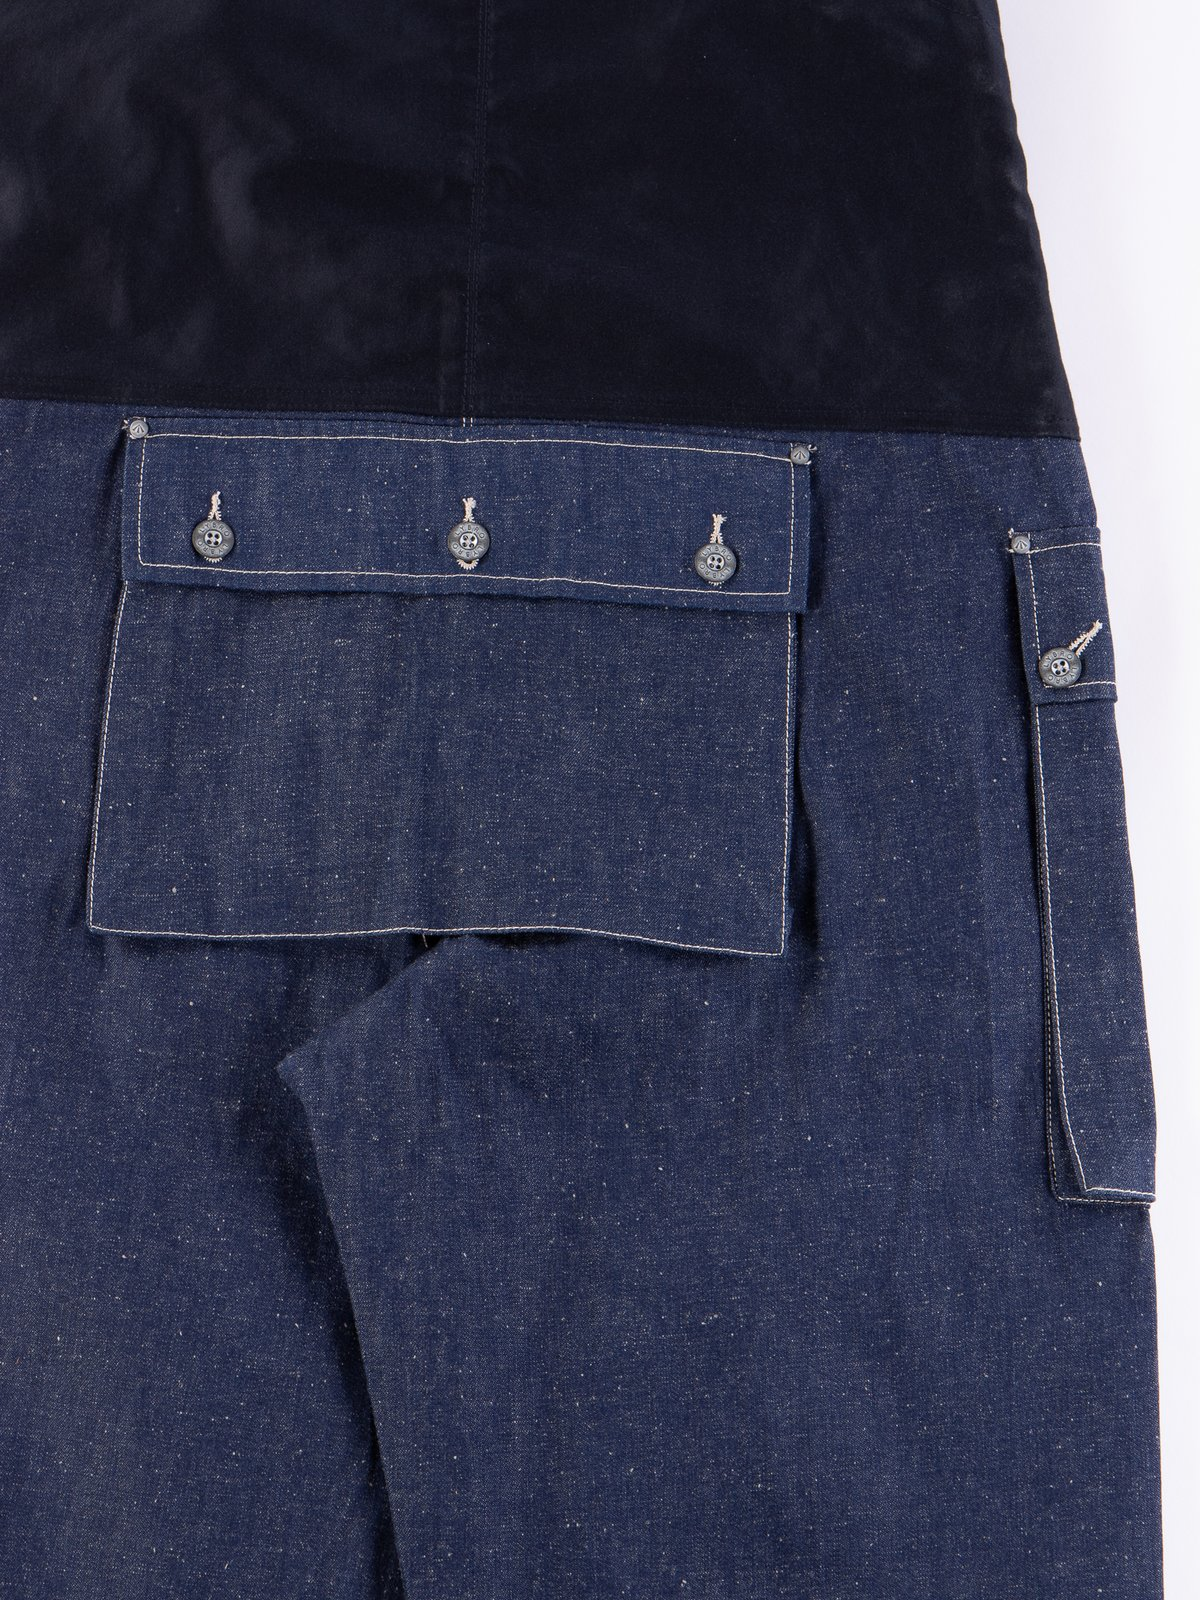 Lybro Split Denim/Navy Sateen Naval Dungaree - Image 6